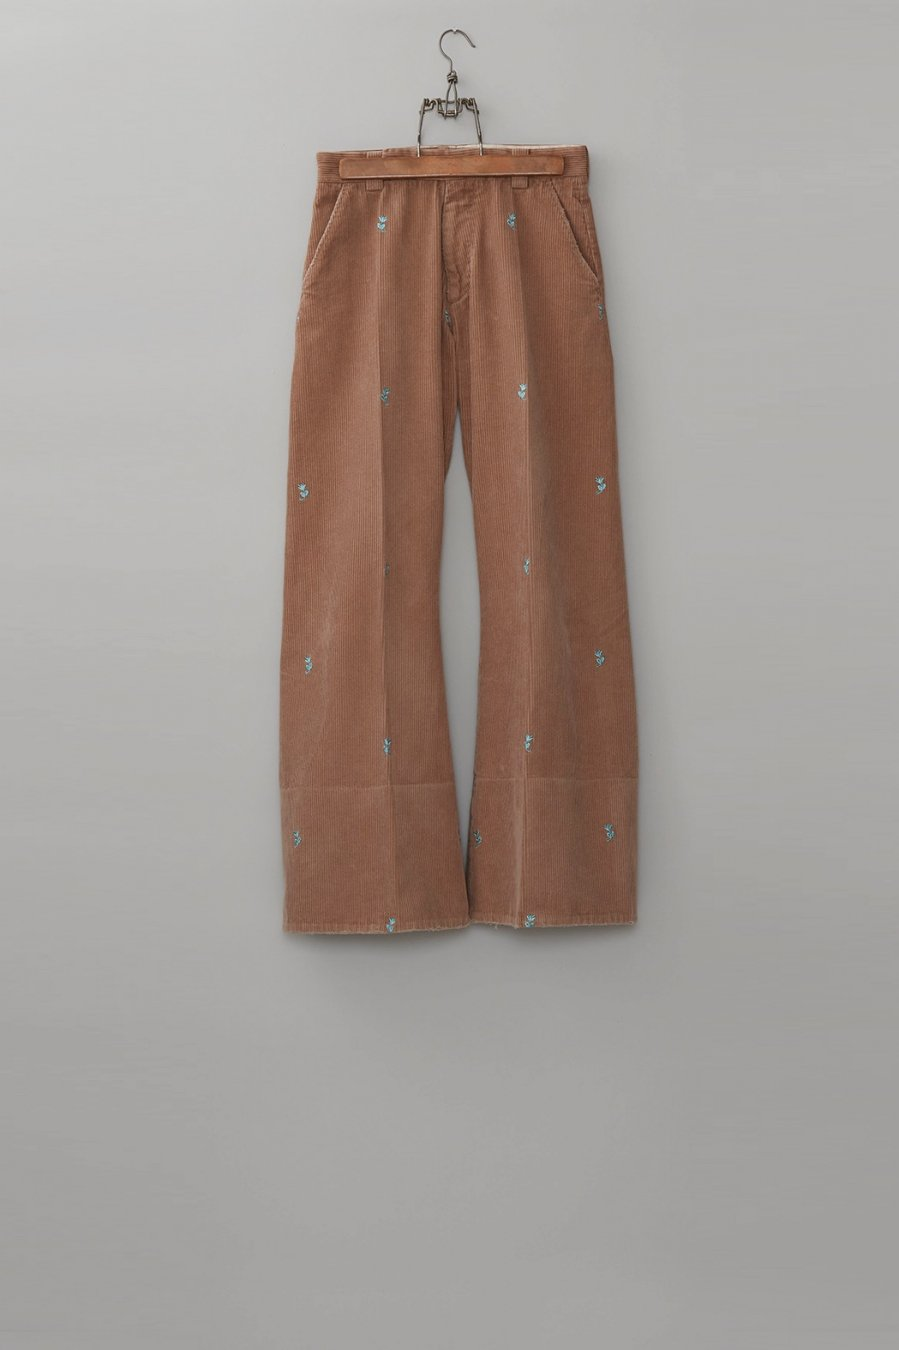 MASU  SEAMLESS BELL BOTTOM TROUSERS(BEIGE)<img class='new_mark_img2' src='https://img.shop-pro.jp/img/new/icons15.gif' style='border:none;display:inline;margin:0px;padding:0px;width:auto;' />